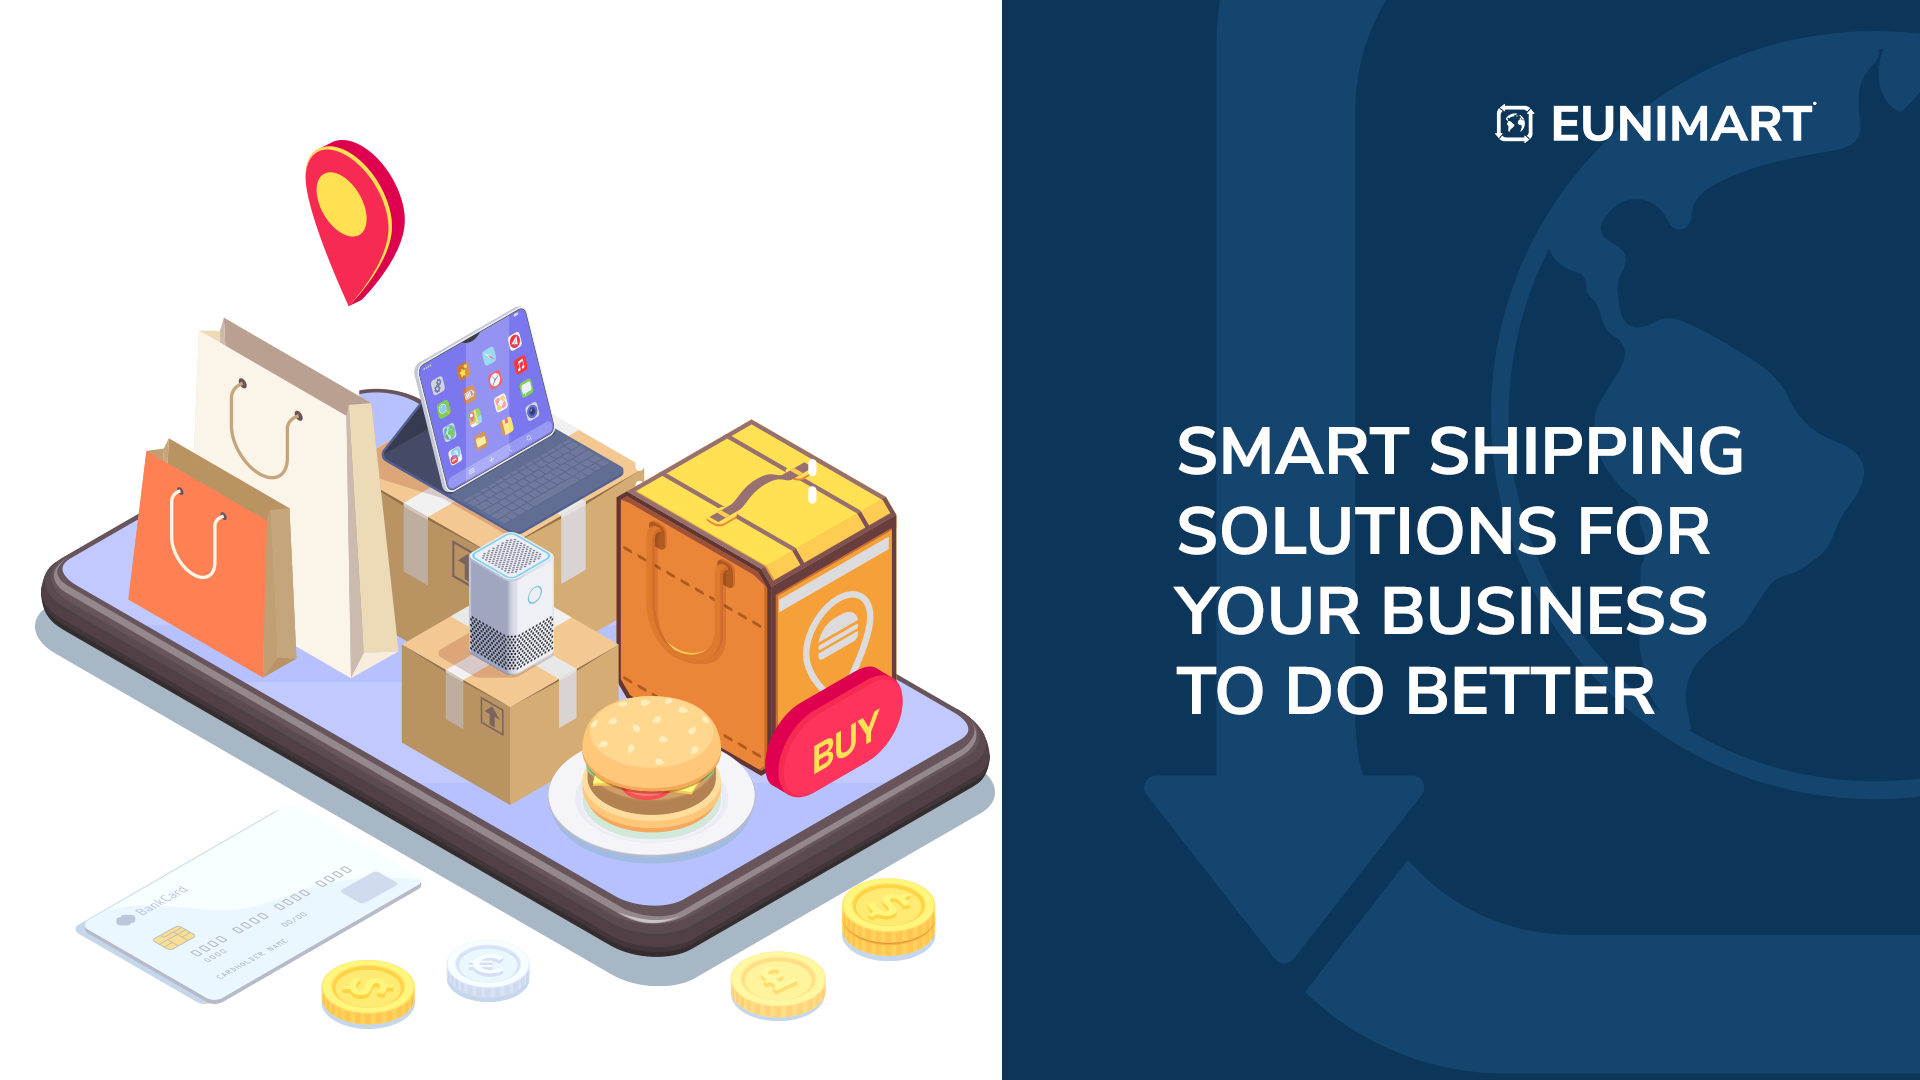 Smart Shipping Solutions for your business to do better